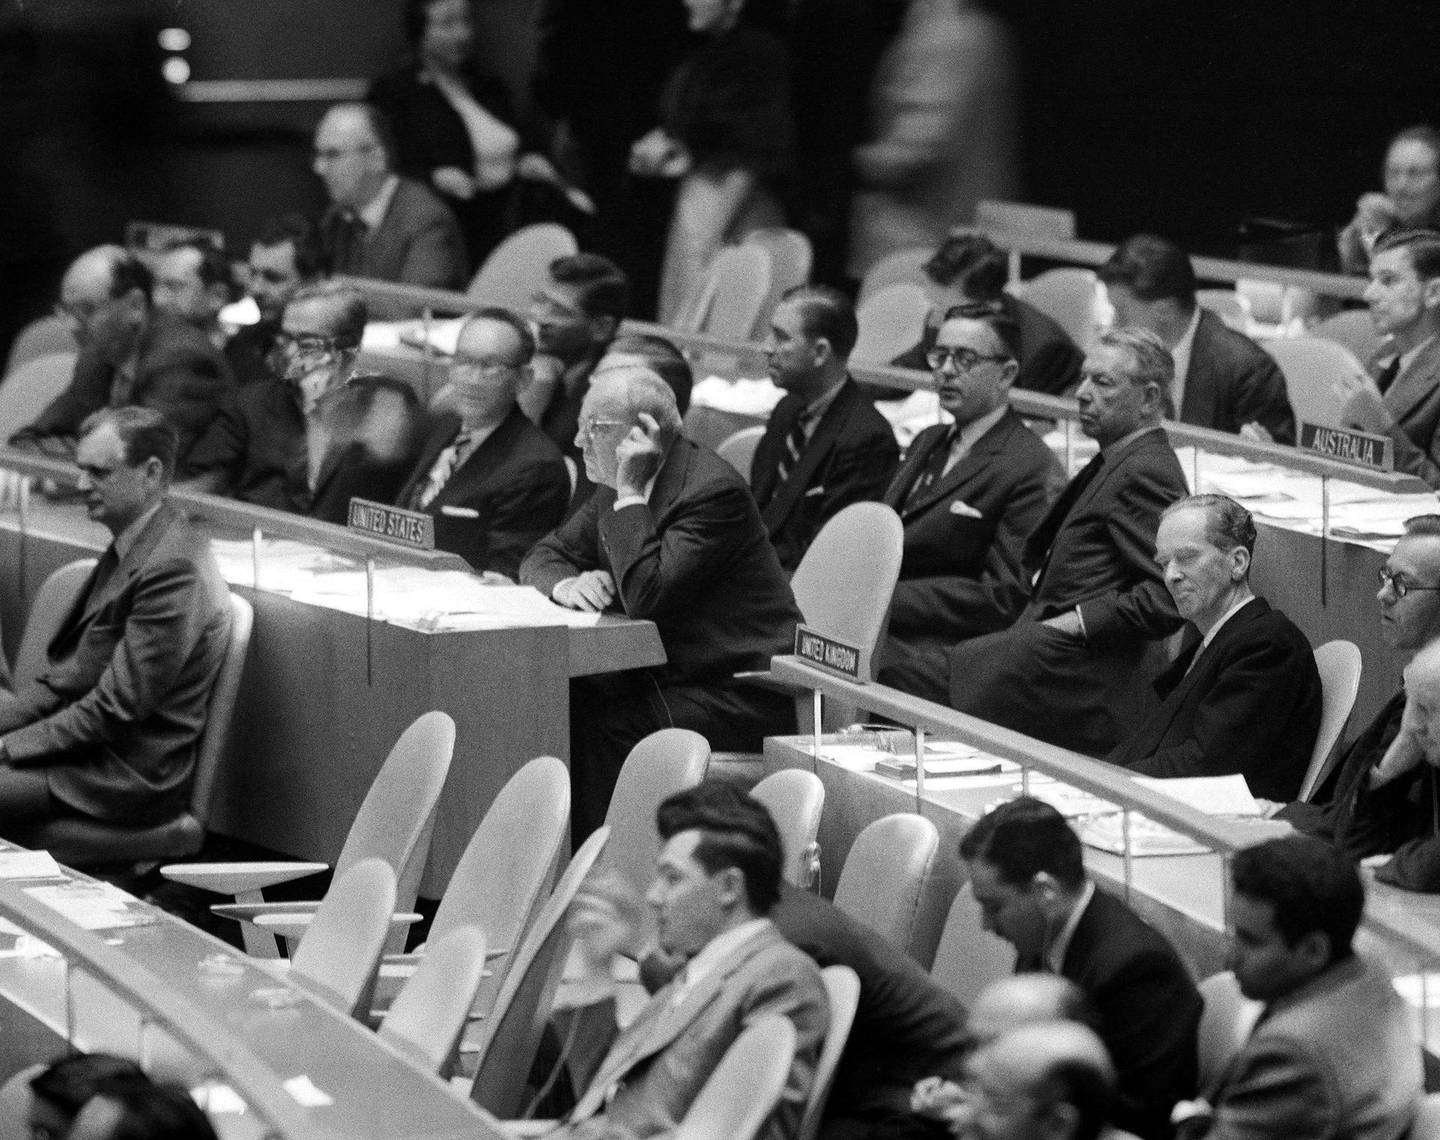 U.S. secretary of state John Foster Dulles, left and British Delegate Sir Pierson Dixon, right, sit on opposite side of the aisle at United Nations General Assembly meeting on Nov. 2, 1956 in New York, during voting on a resolution urging an immediate cease-fir in Egypt. They were also on opposite side in the voting. (AP Photo)